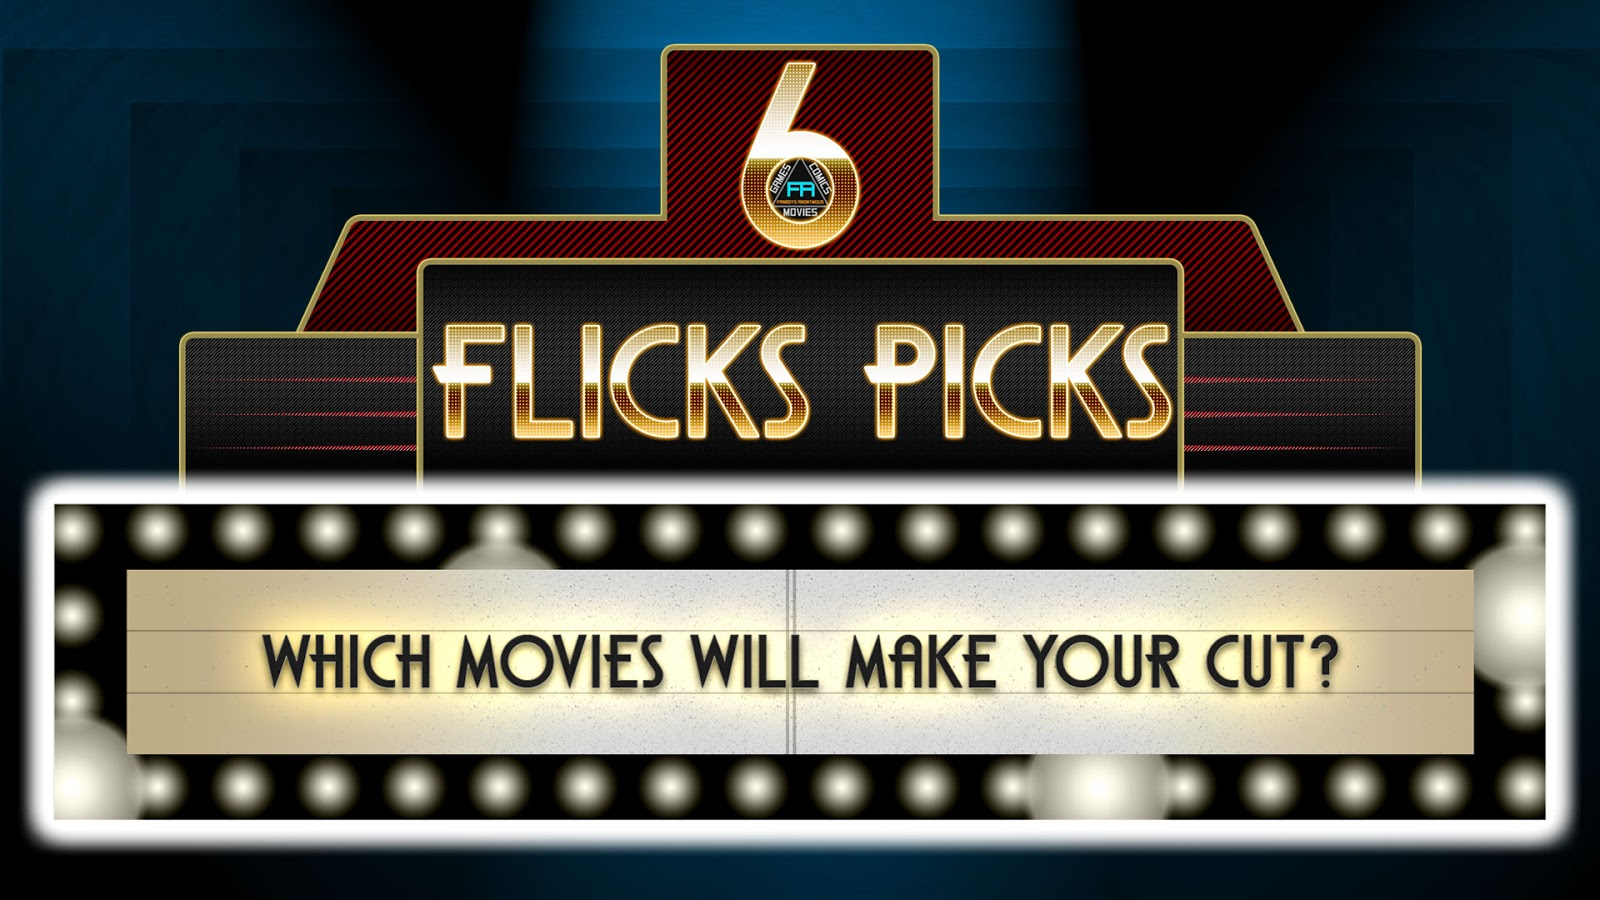 What movies are coming out February 2019 6 Flicks Picks